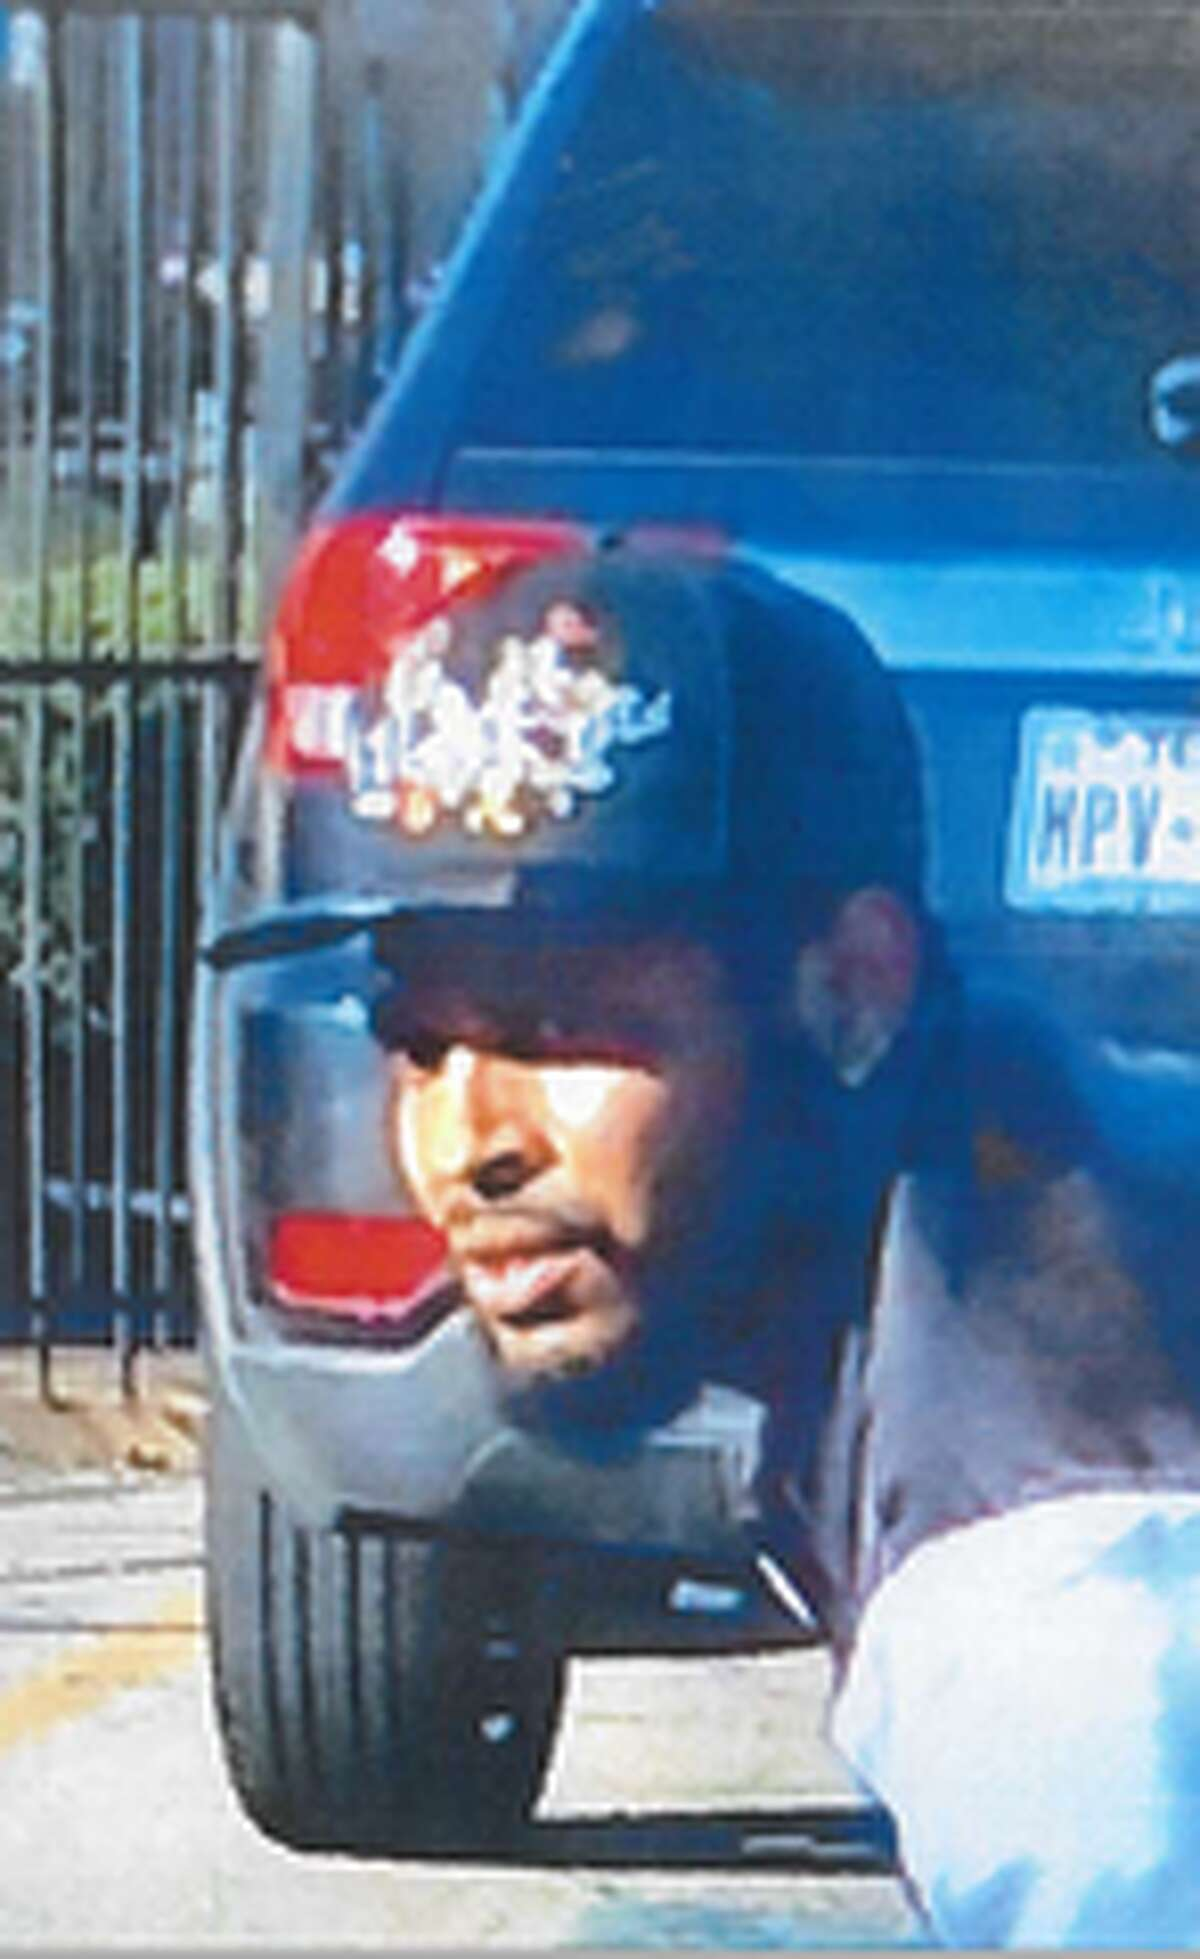 The Harris County Sheriff's Office on Wednesday released surveillance images of a person of interest and a vehicle tied to the murder of Cory Crawford in northwest Harris County.